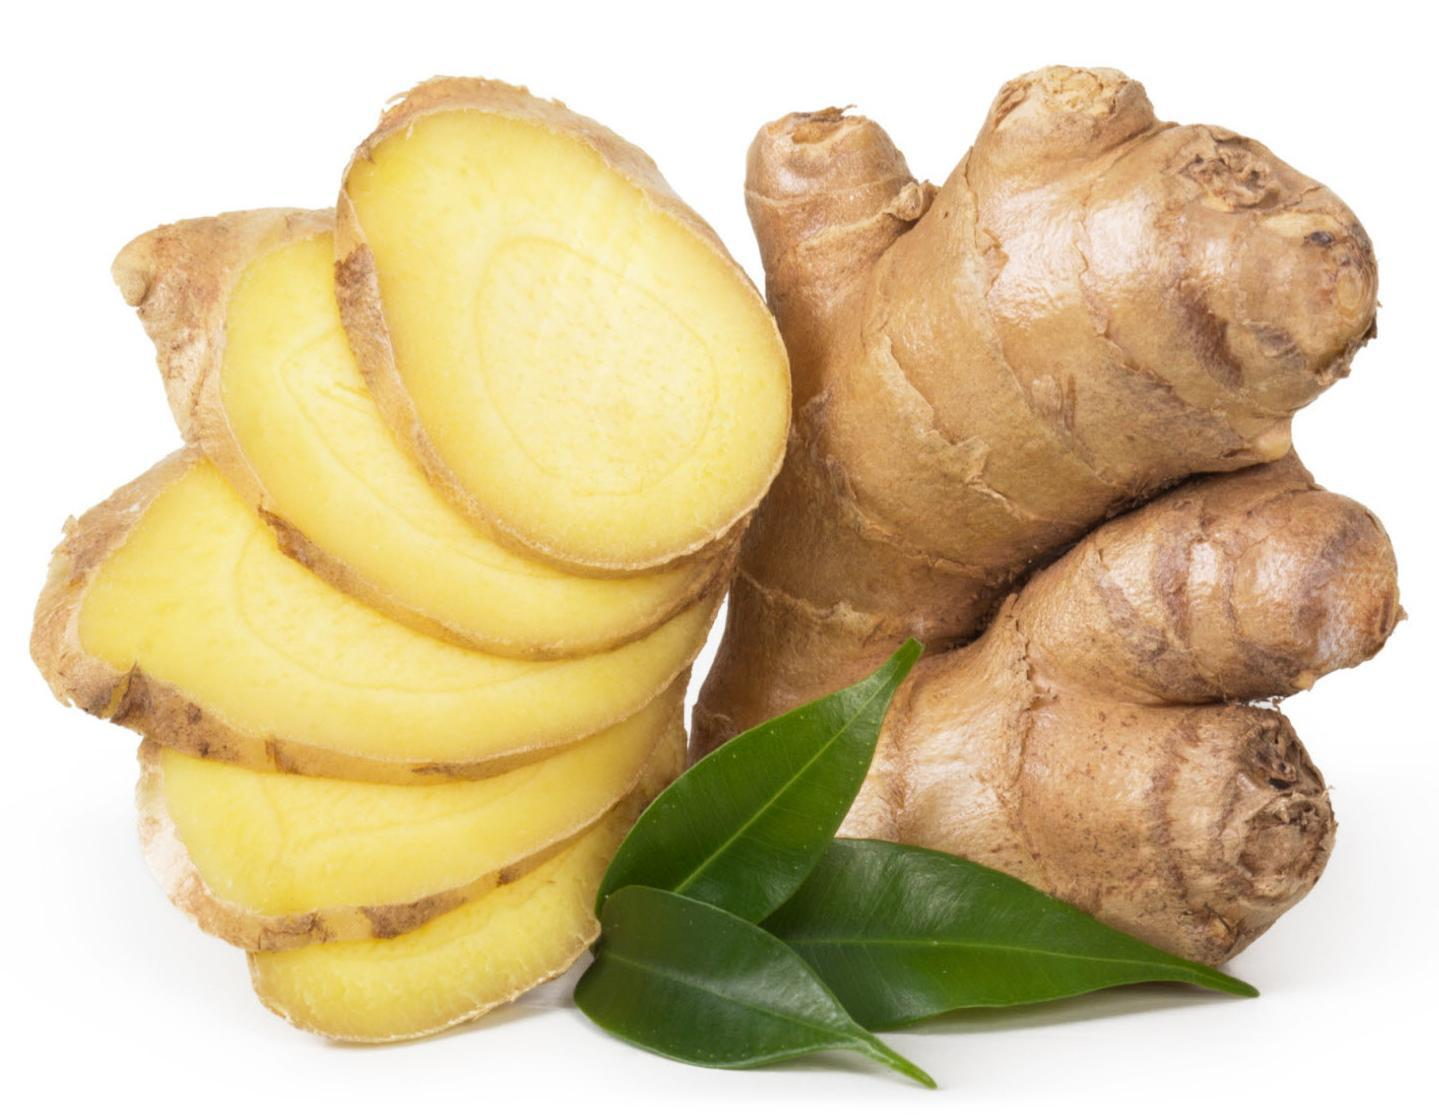 ginger Ginger (zingiber officinale) is a flowering plant whose rhizome, ginger root or simply ginger, is widely used as a spice or a folk medicine it is a herbaceous perennial which grows annual pseudostems (false stems made of the rolled bases of leaves) about a meter tall bearing narrow leaf blades.